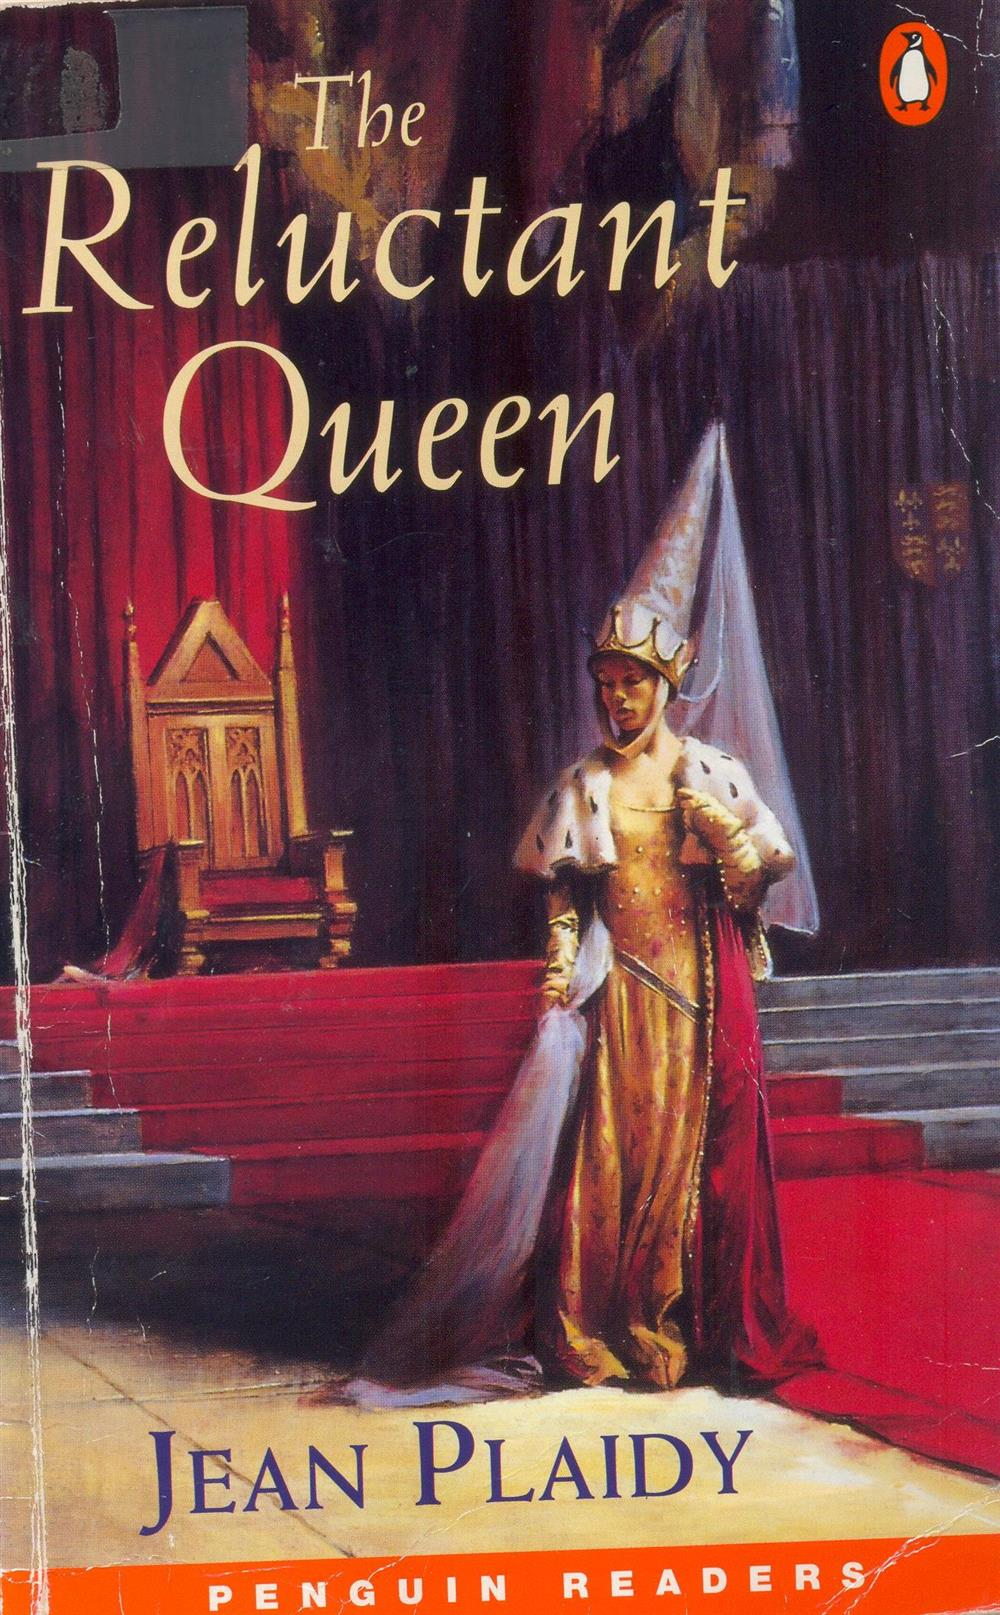 The reluctant queen 001.jpg